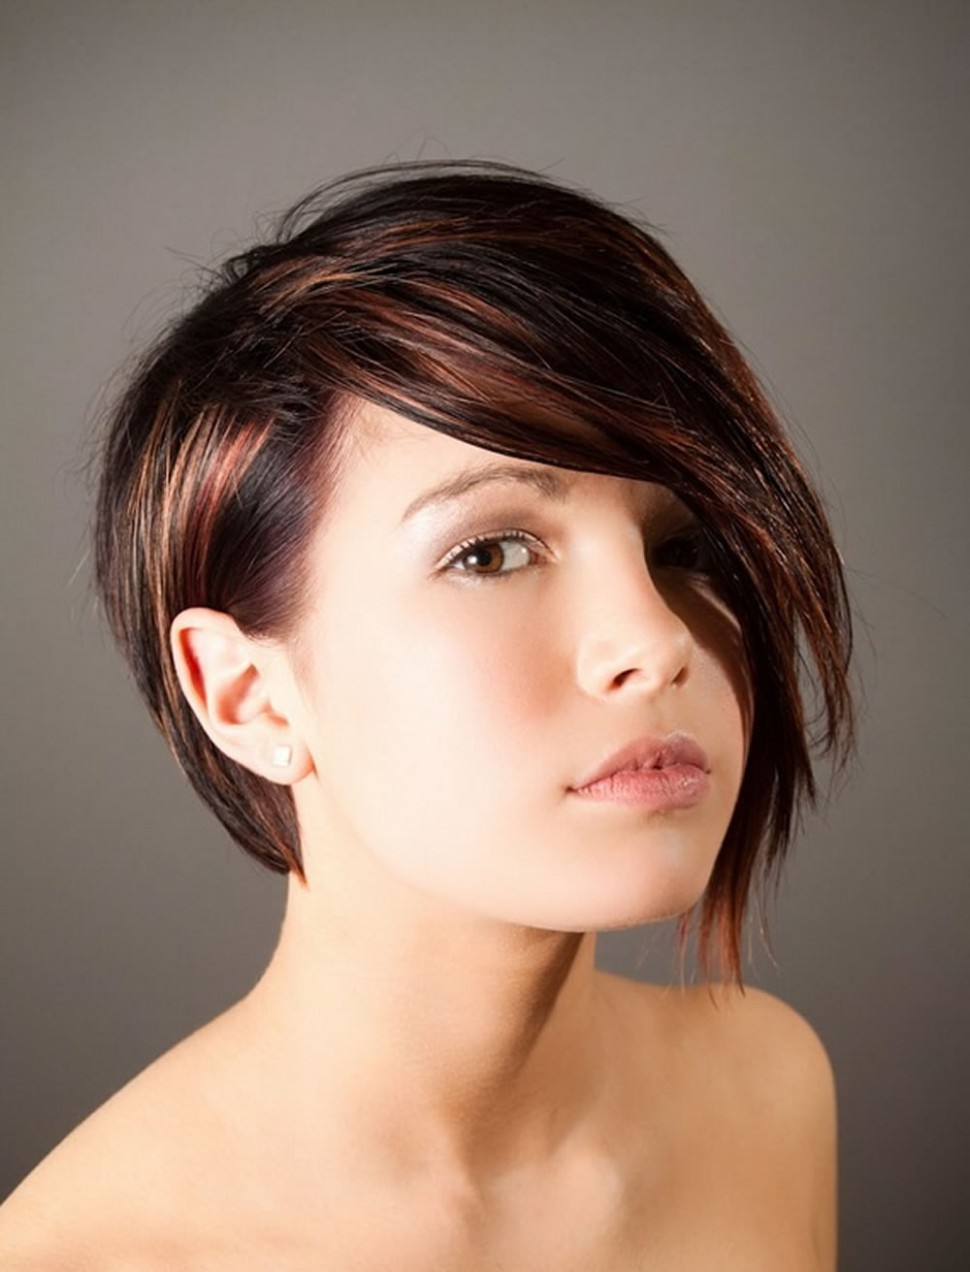 Hairstyles: Bob Hairstyles Long On One Side Hair Short On One Side Long On The Other